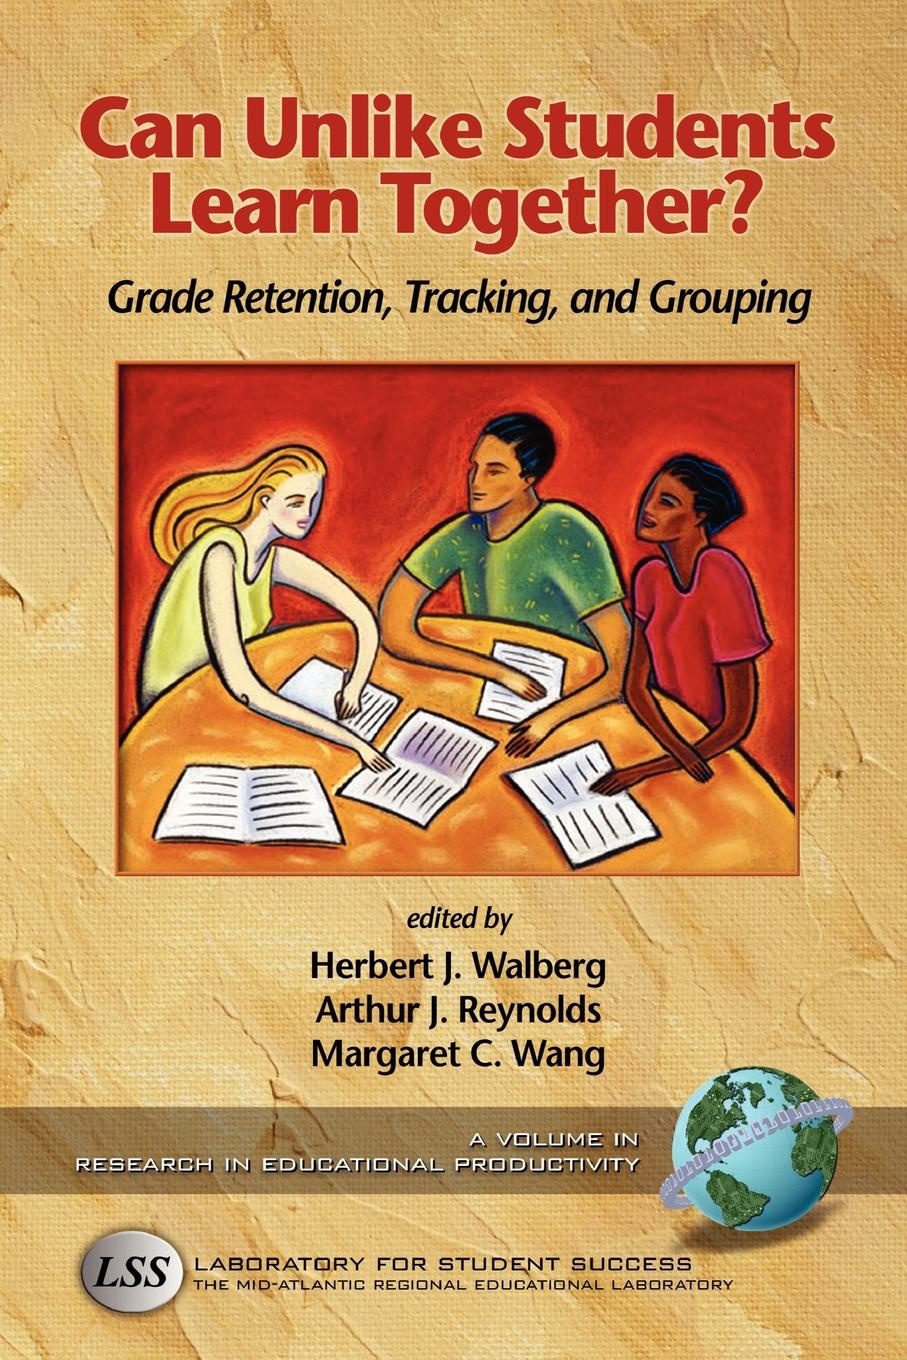 Can Unlike Students Learn Together?. Grade Retention, Tracking, and Grouping (PB)